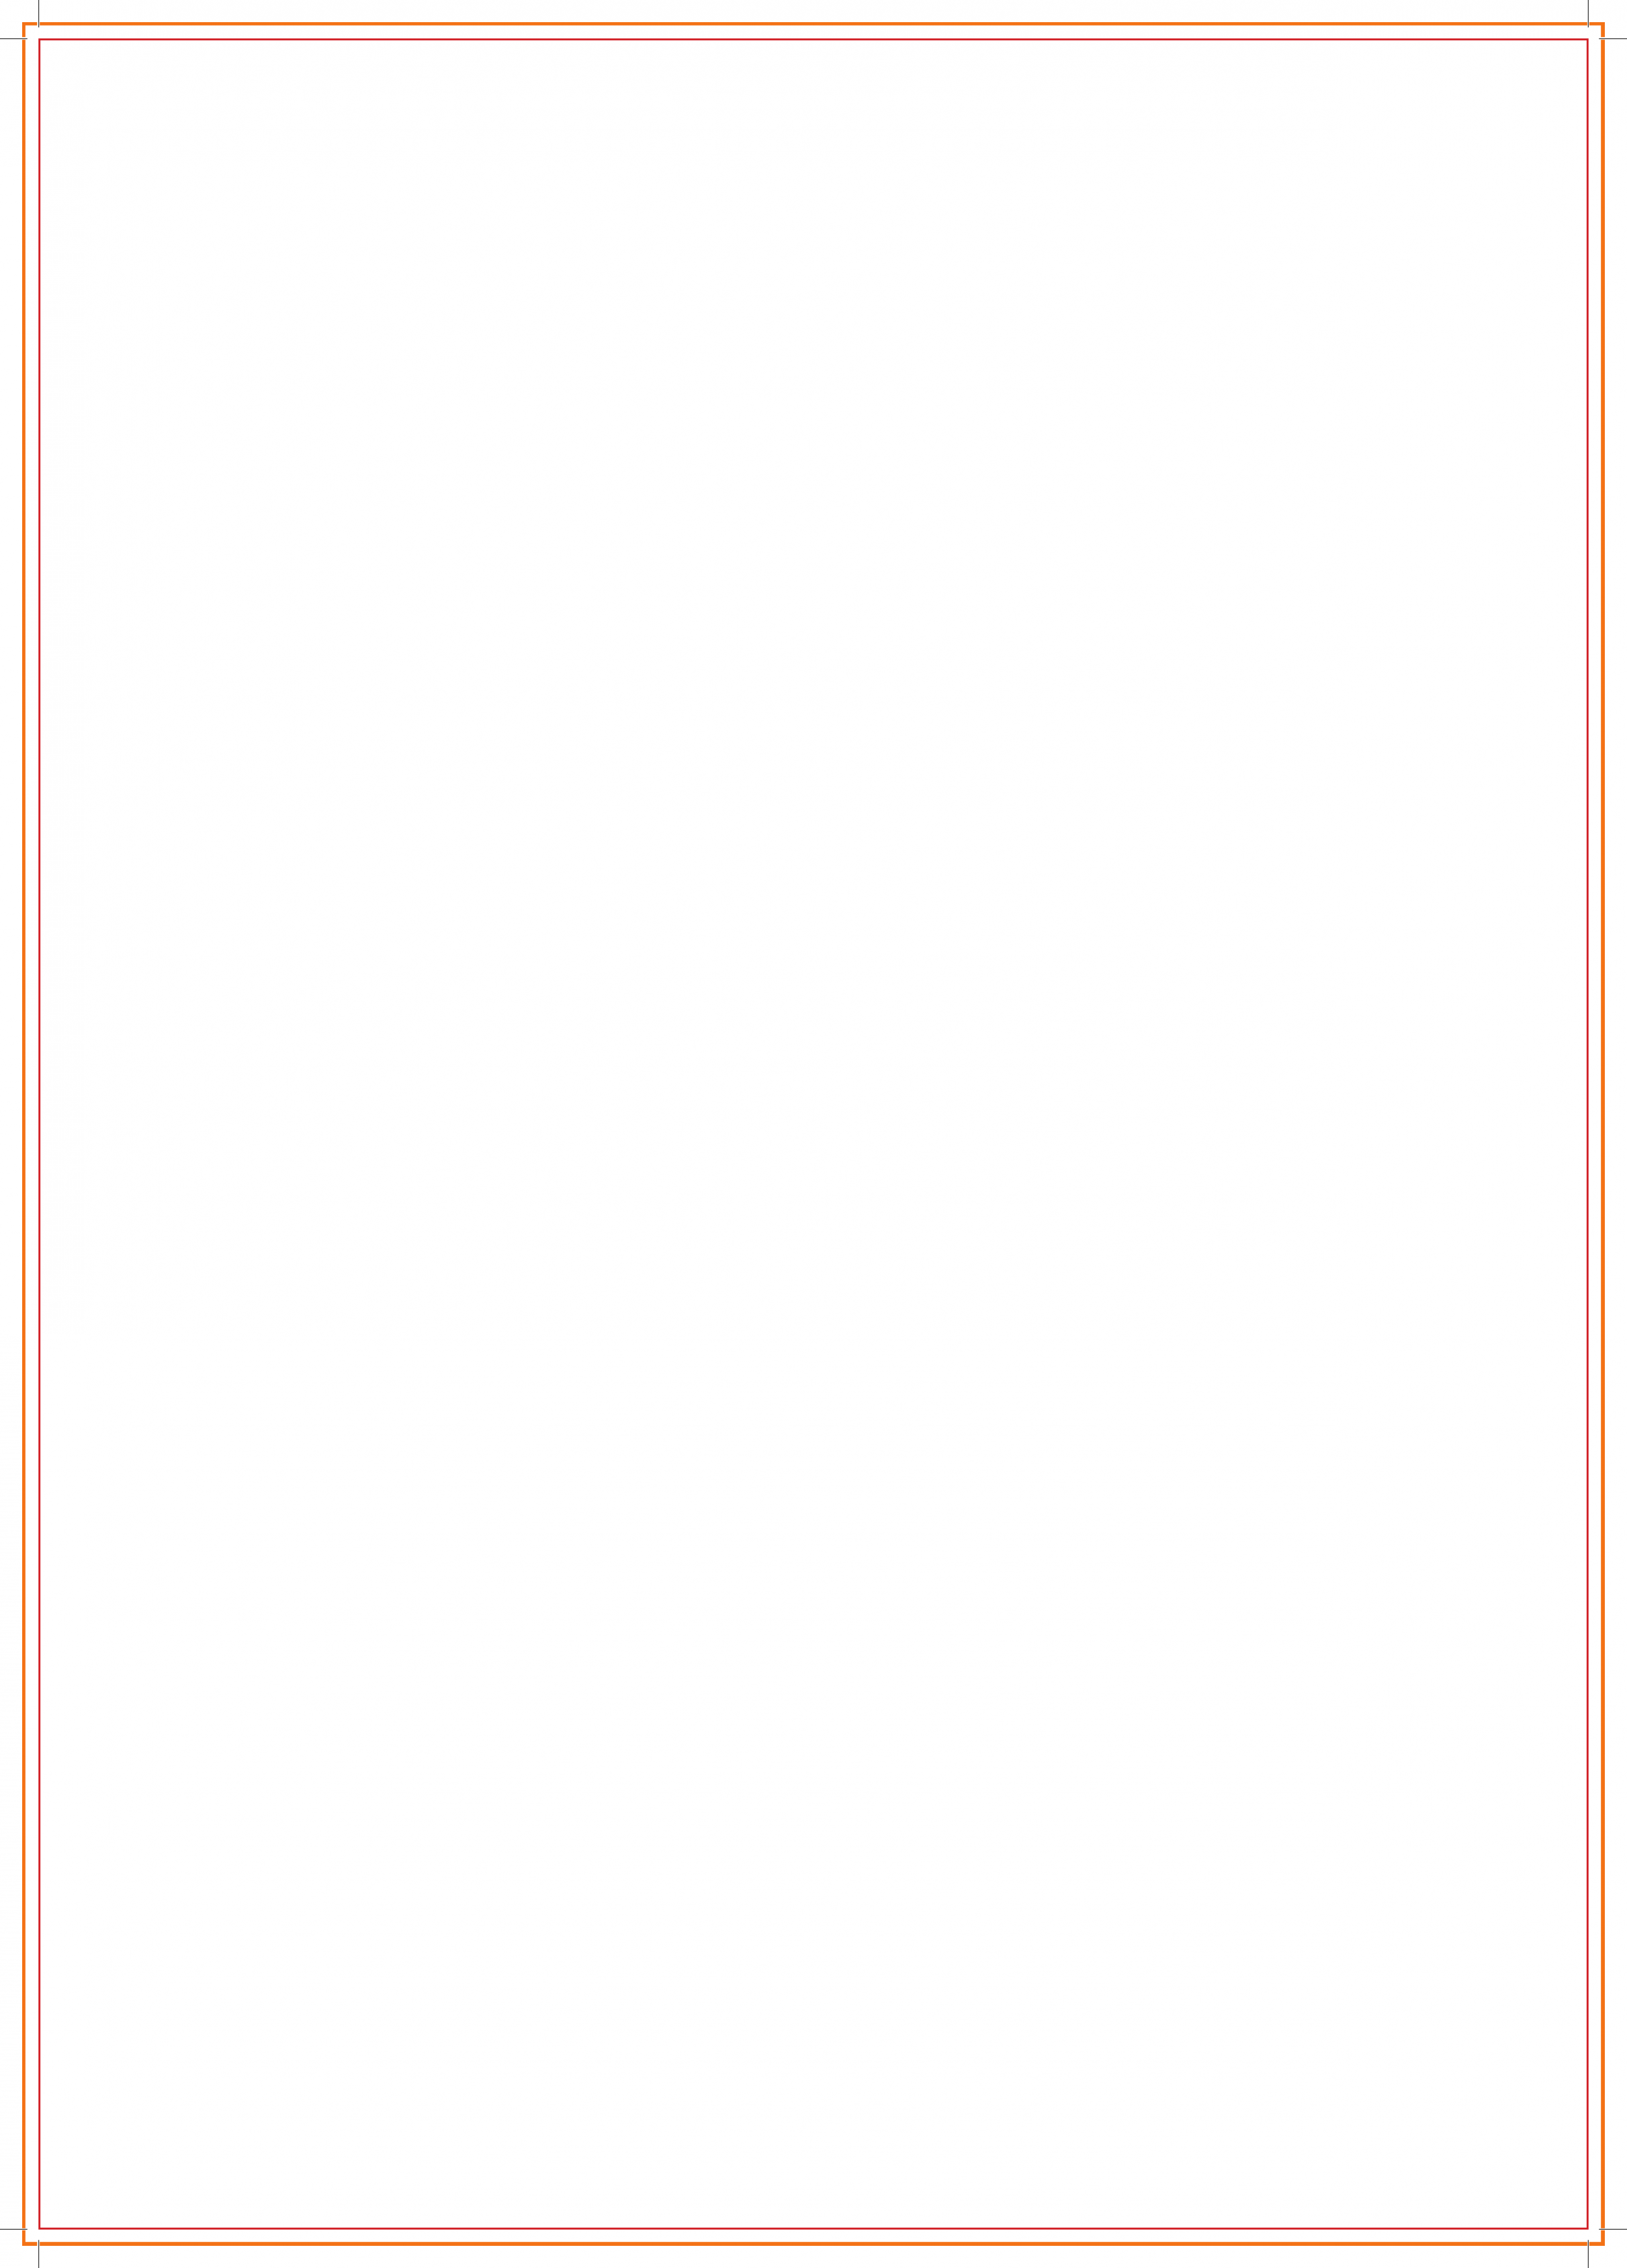 free printable letter d template printable  Template: A3 Poster Free Download - free printable letter d template printable